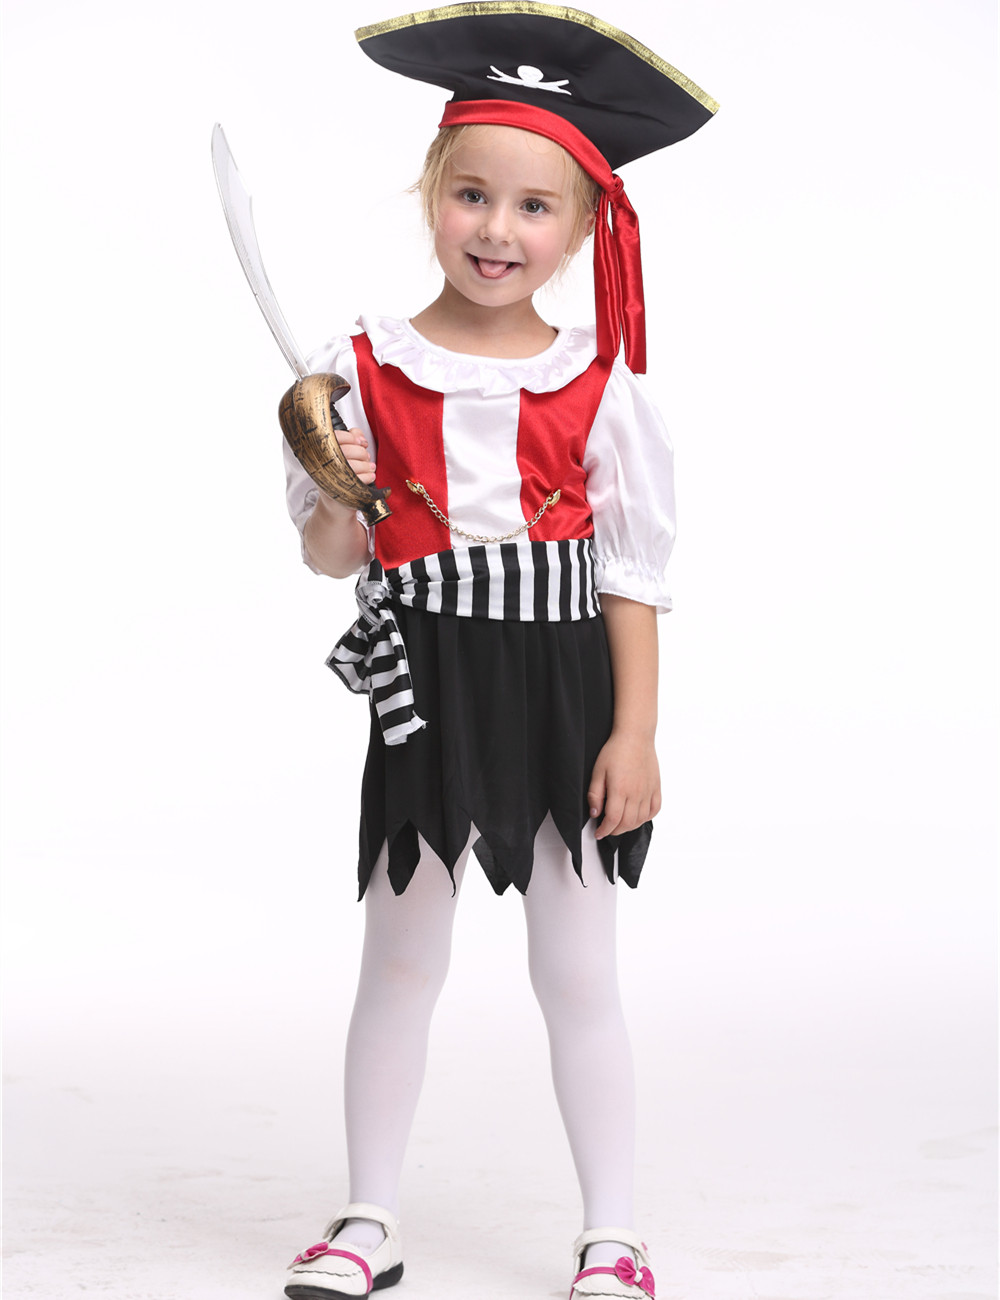 Girls Pirate Costume Halloween Costume For Kids Stage & Dance Wear Toddler Pirate Short Skirt Party Cosplay